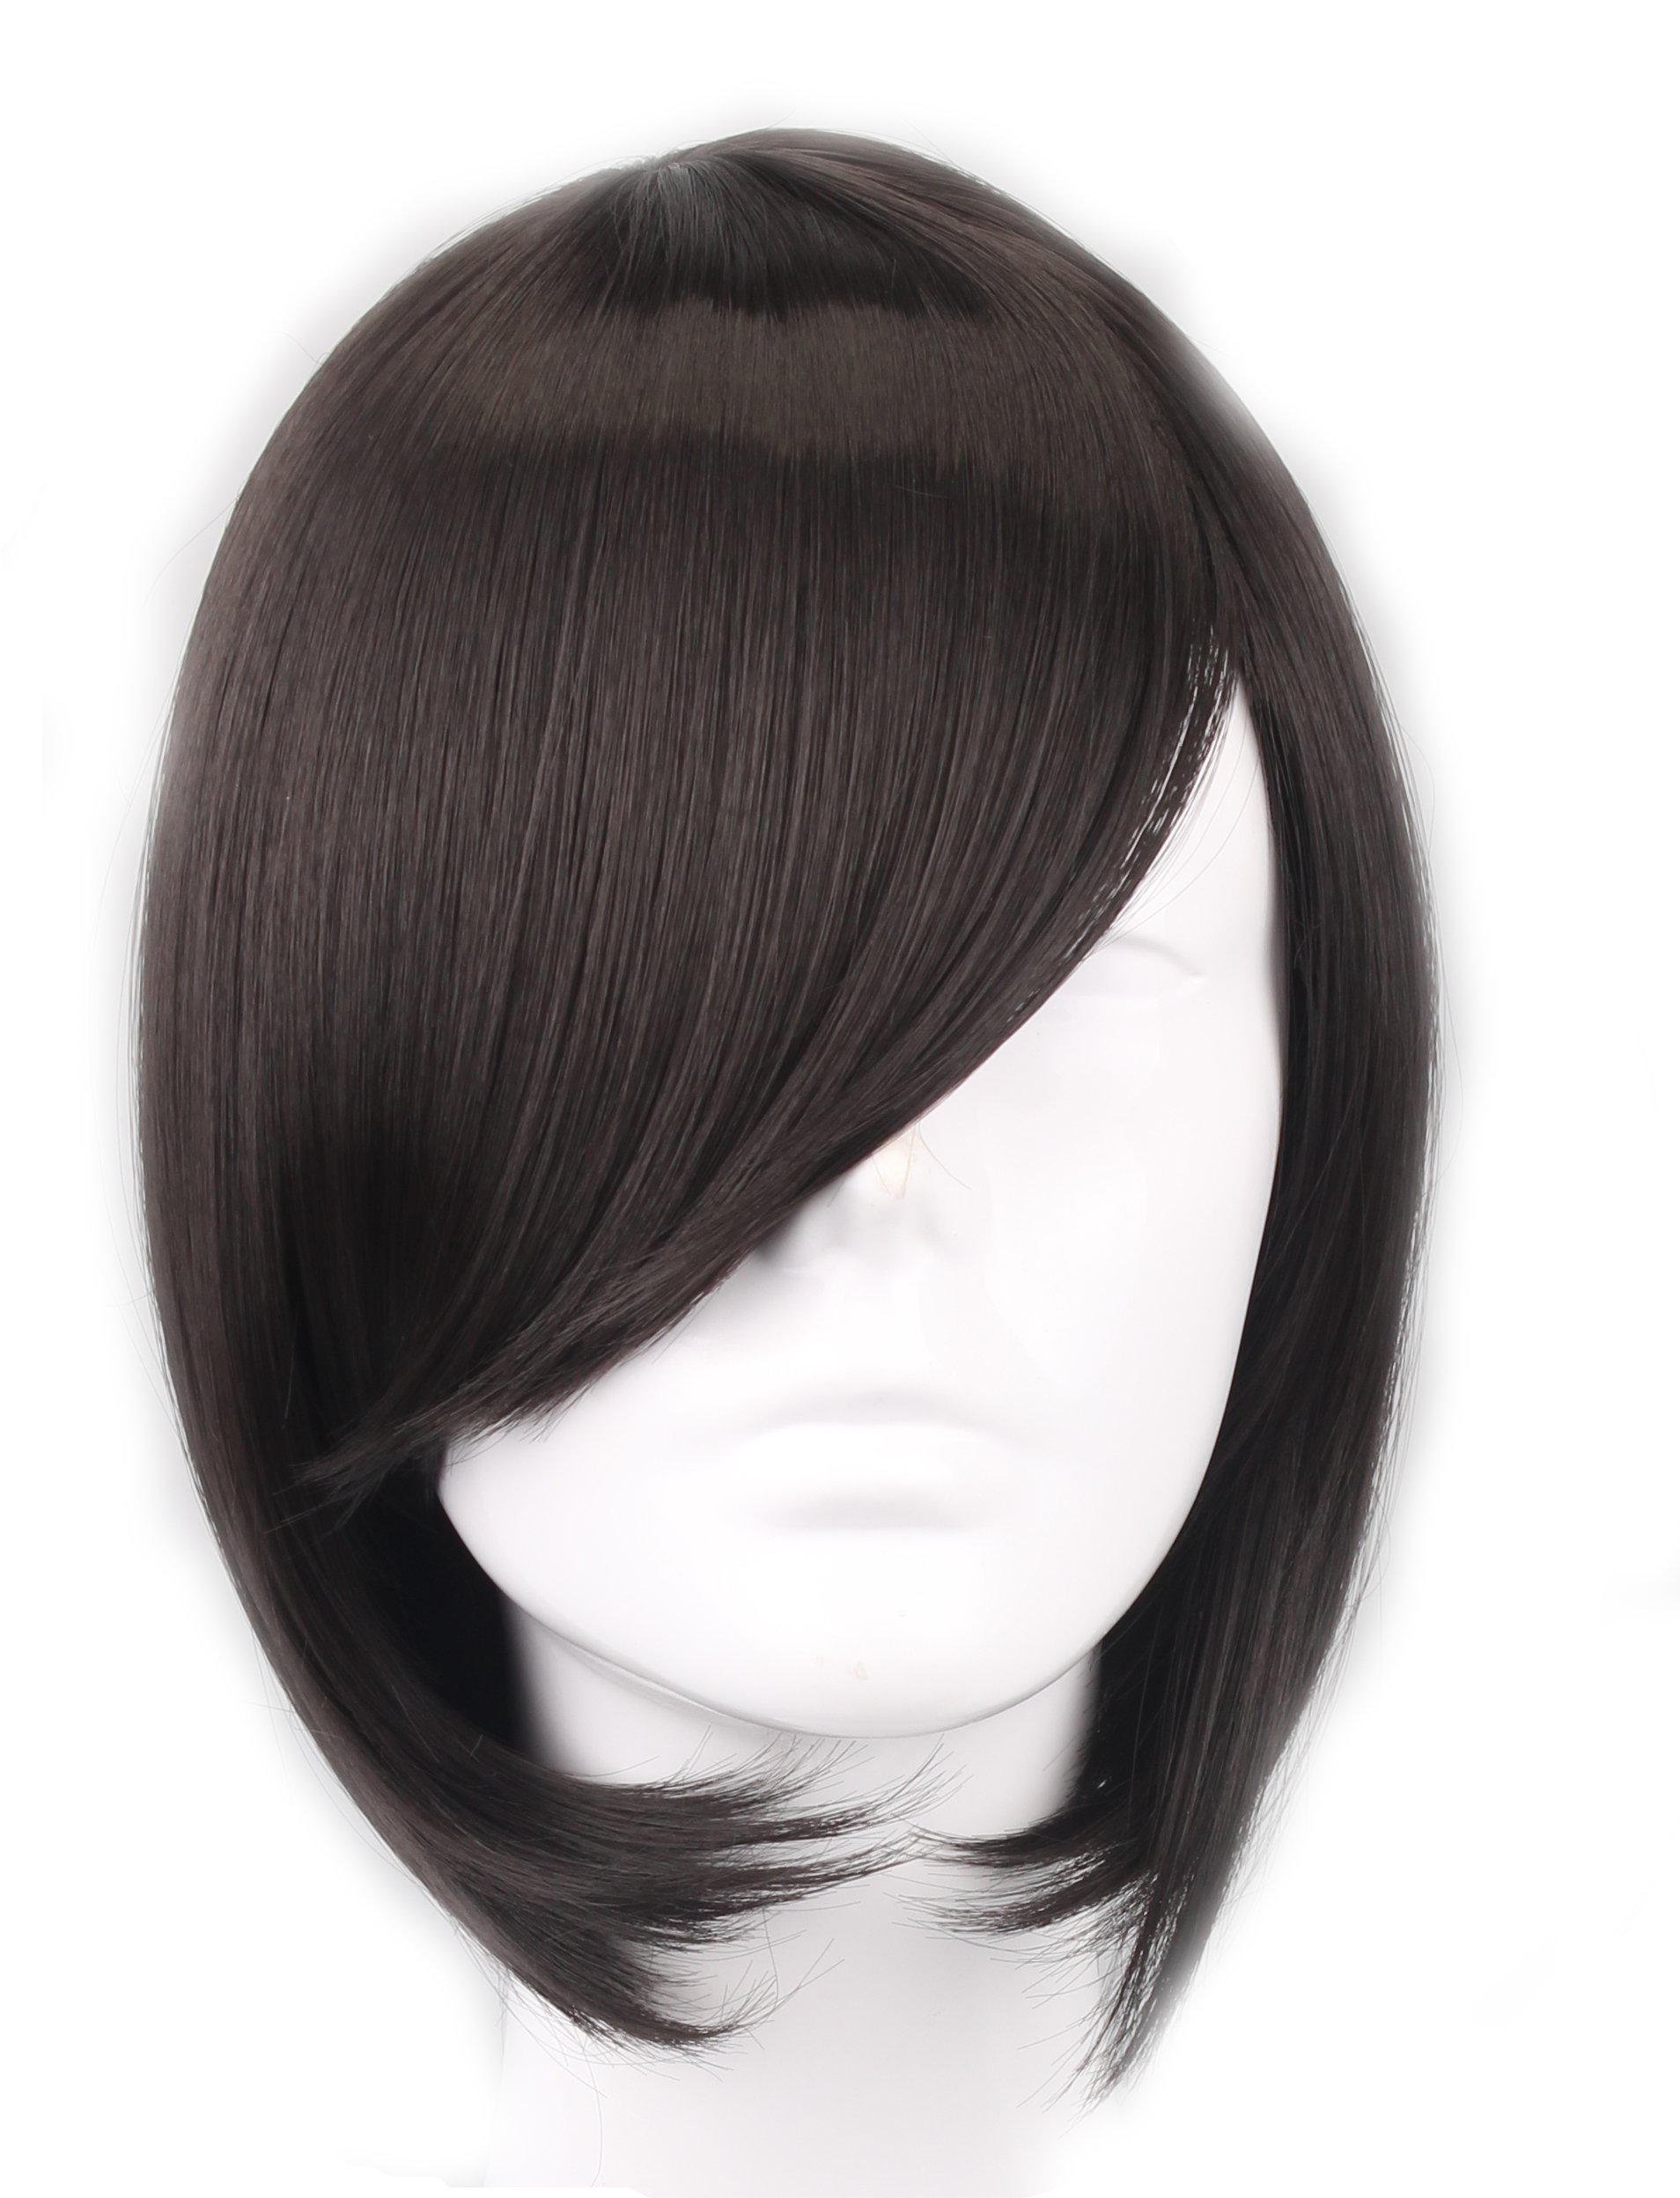 SIMUSTY SYNTHETIC Short Bob Natural Black Brown Head Women Wig for Mothers Day Daily Wear